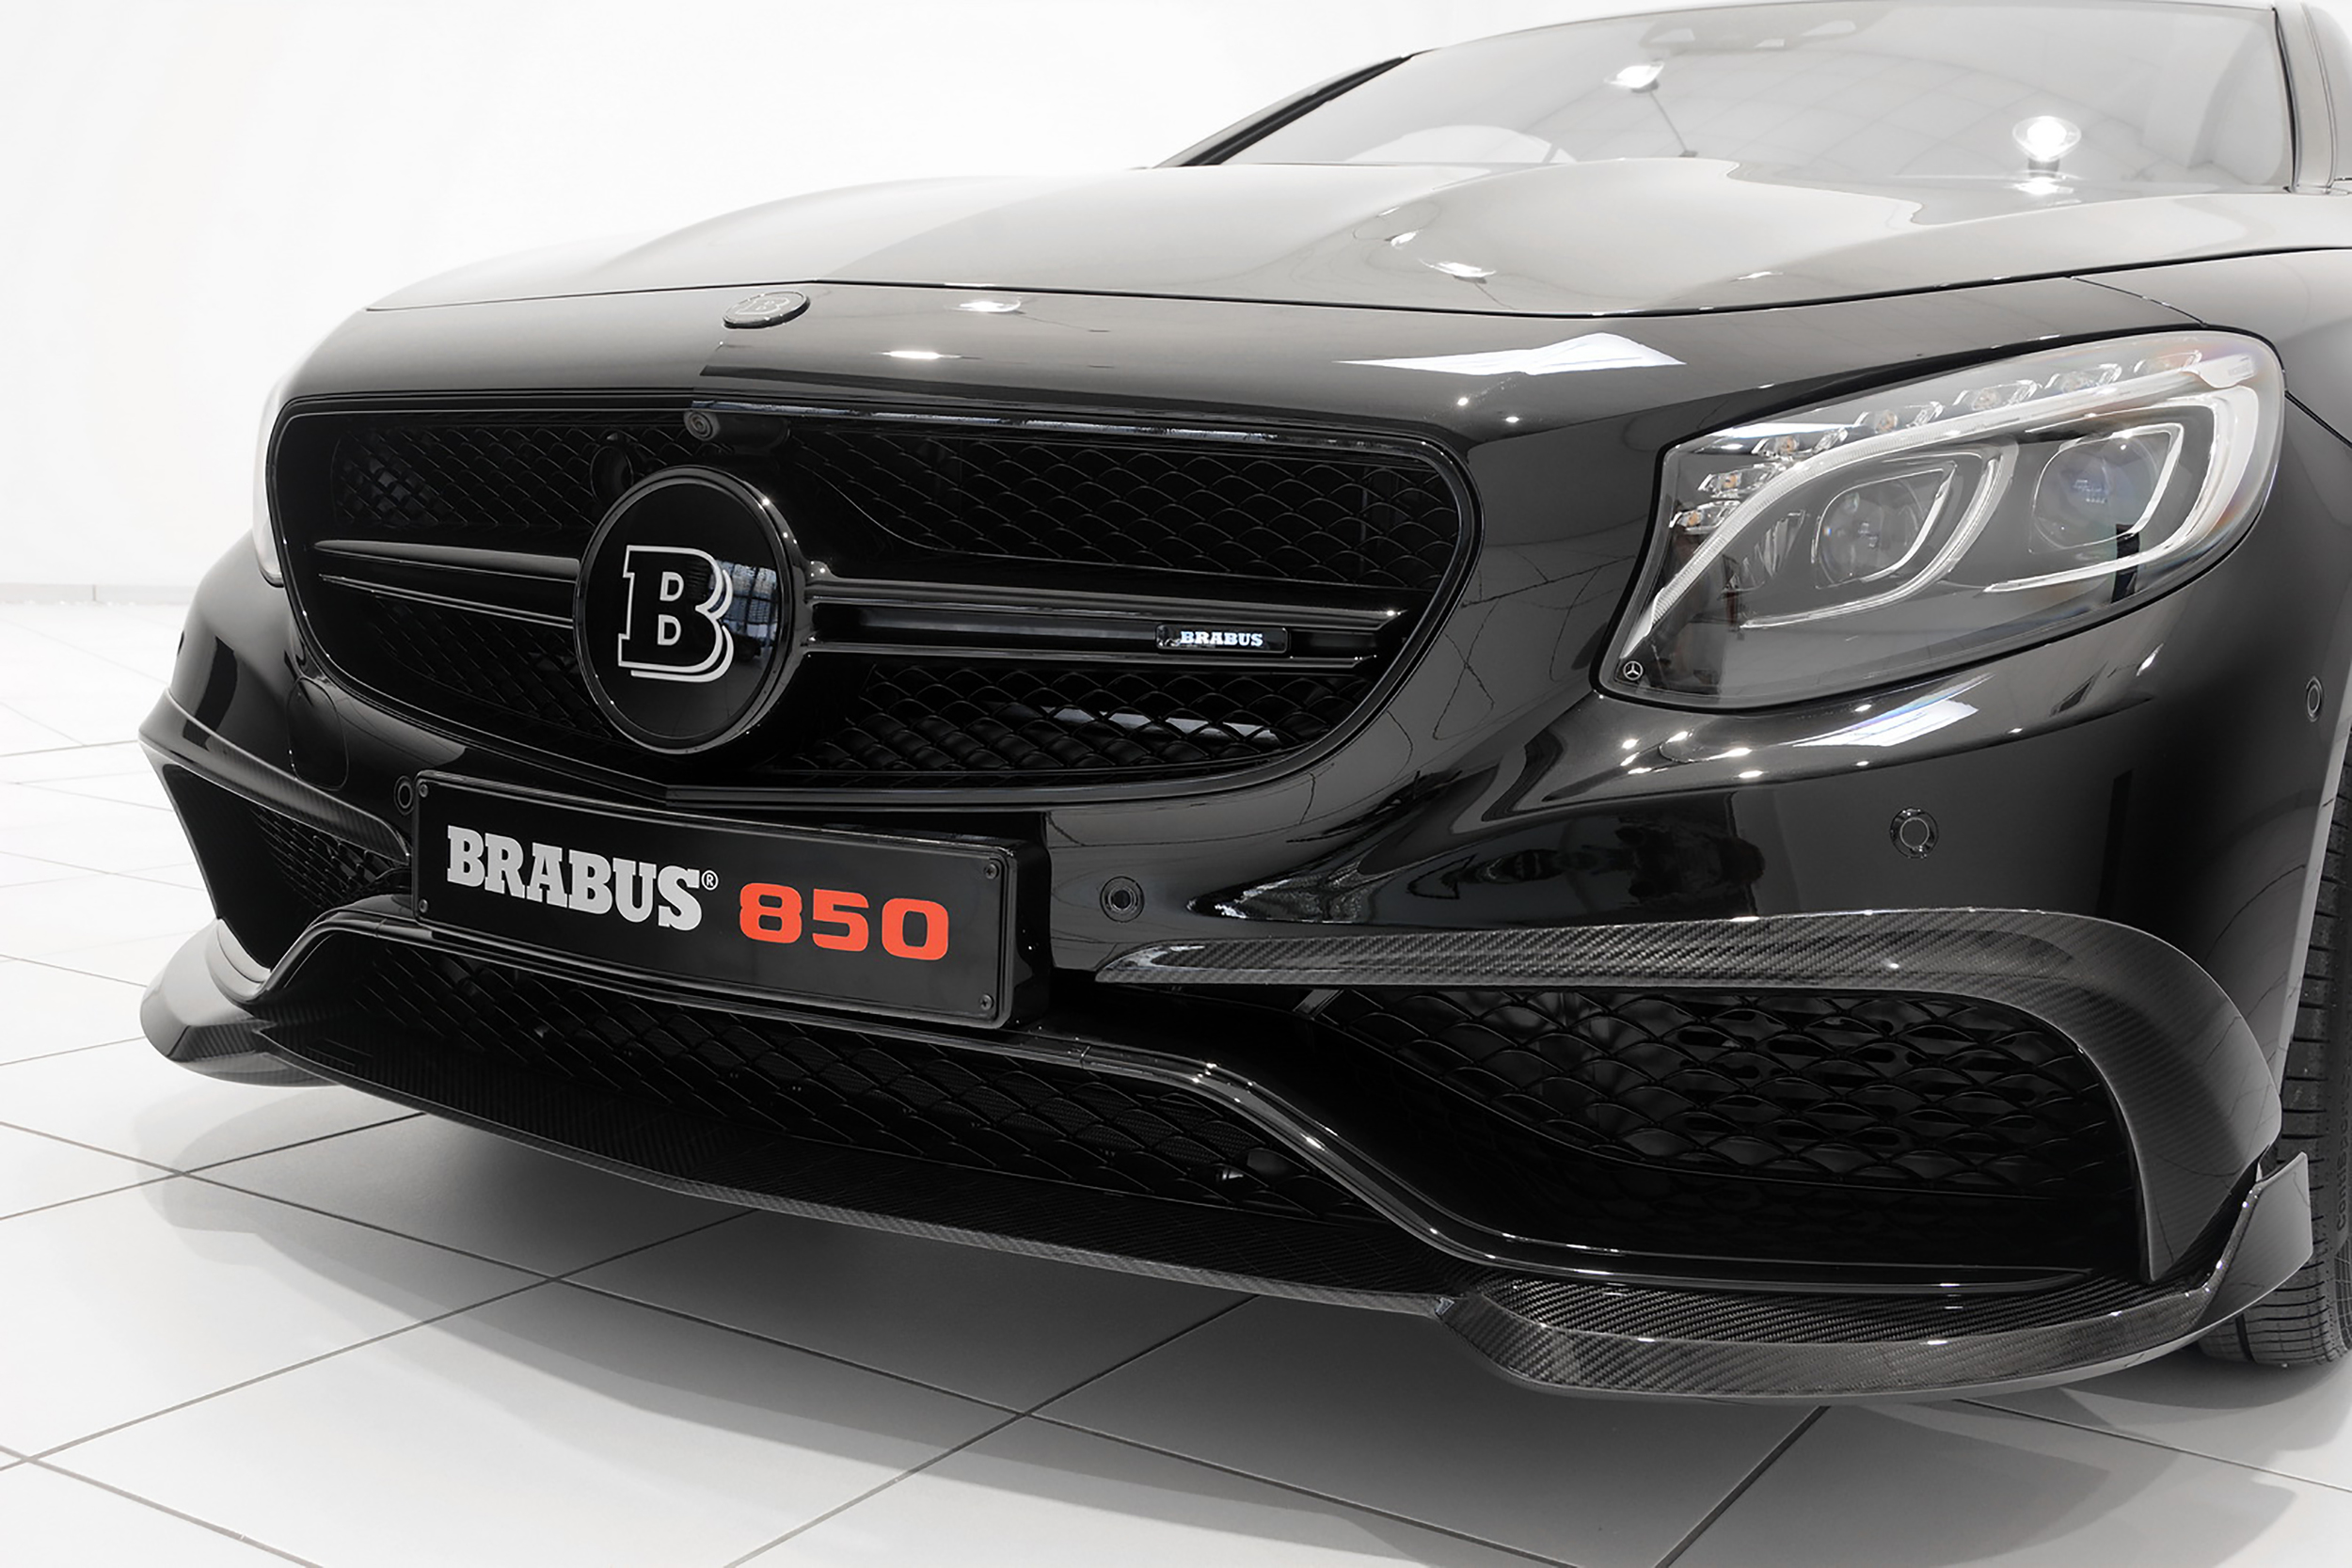 ' ' from the web at 'http://www.blogcdn.com/slideshows/images/slides/335/950/2/S3359502/slug/l/brabus-s-class-coupe-23-1.jpg'